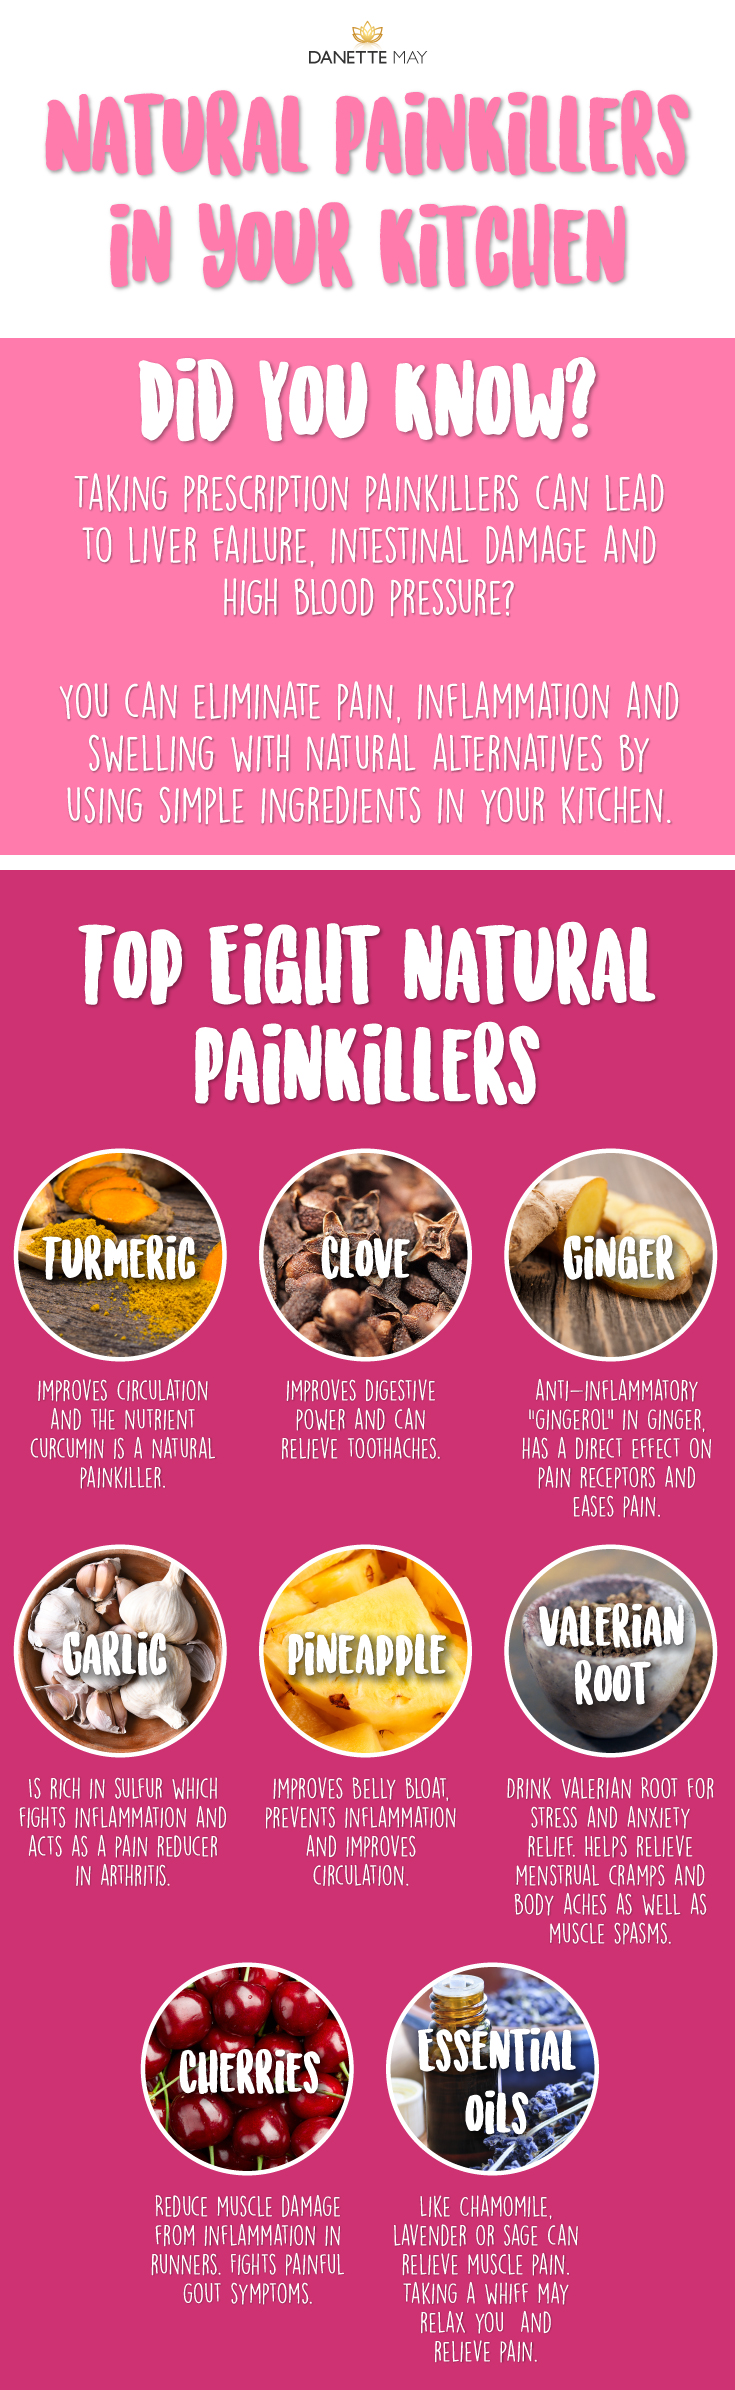 natural painkillers infographic